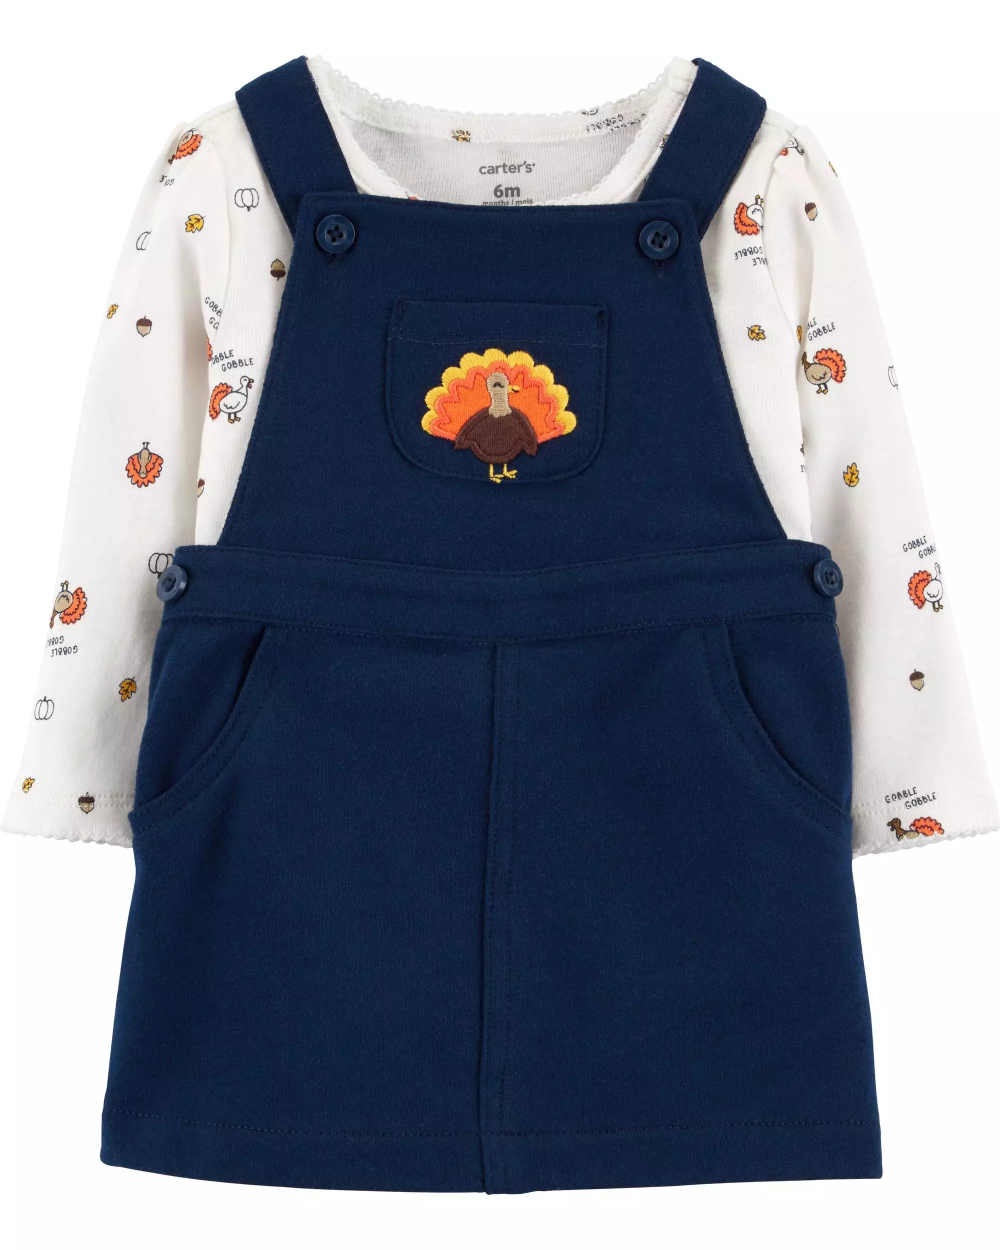 3 MO CARTERS NB 2 ONE PIECE /& ONE LEGGINGS NEW NWT Halloween 3 PIECE SET